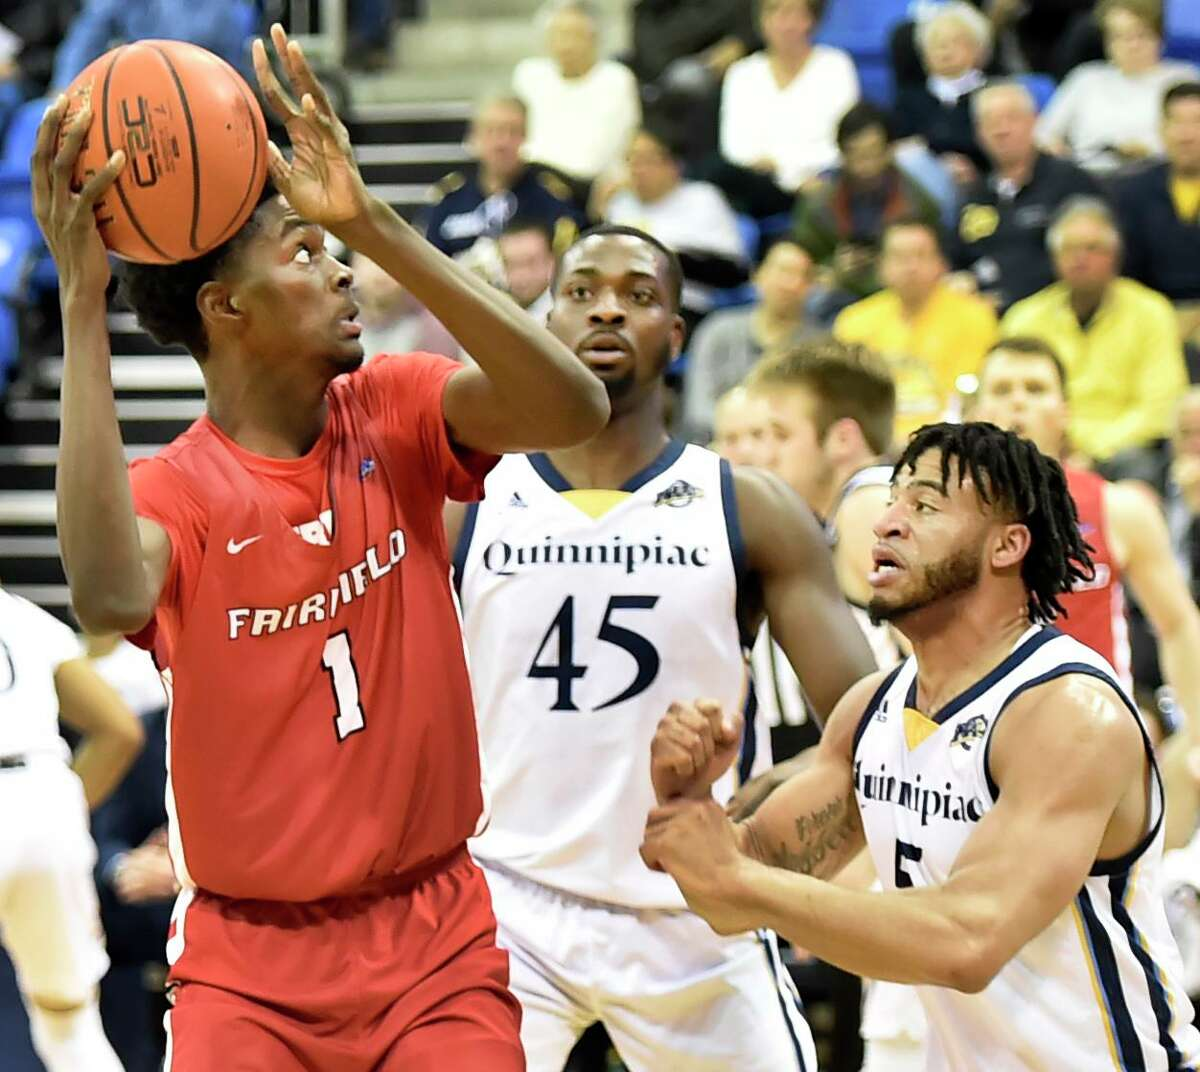 Hamden, Connecticut - January 24, 2020: Chris Maidoh of Fairfield University, left, tries to get a shot over Kevin Marfo, center, and Tyrese Williams of Quinnipiac University , right, during first half basketball against Fairfield University Friday at Quinnipiac in Hamden.